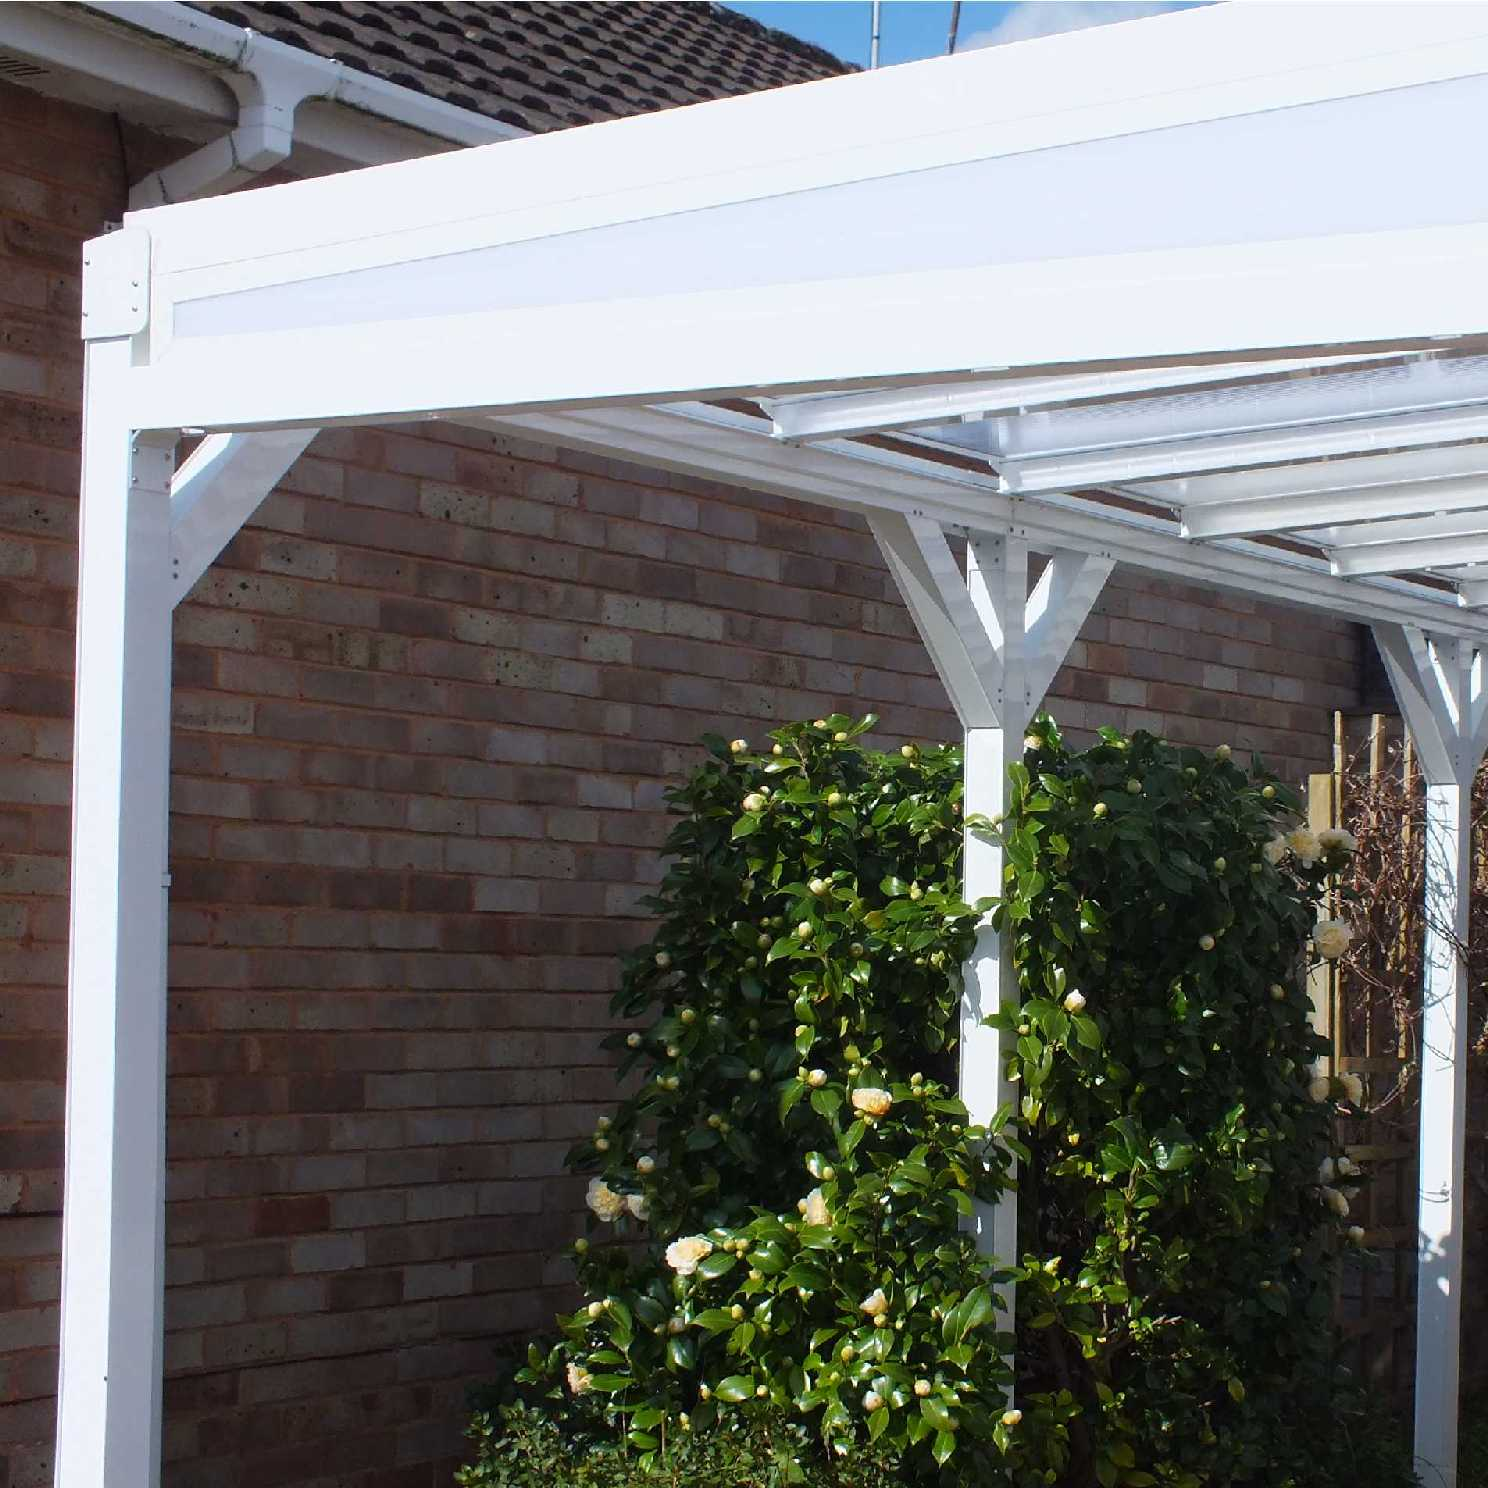 Omega Smart White Lean-To Canopy with 16mm Polycarbonate Glazing - 6.0m (W) x 3.5m (P), (3) Supporting Posts from Omega Build